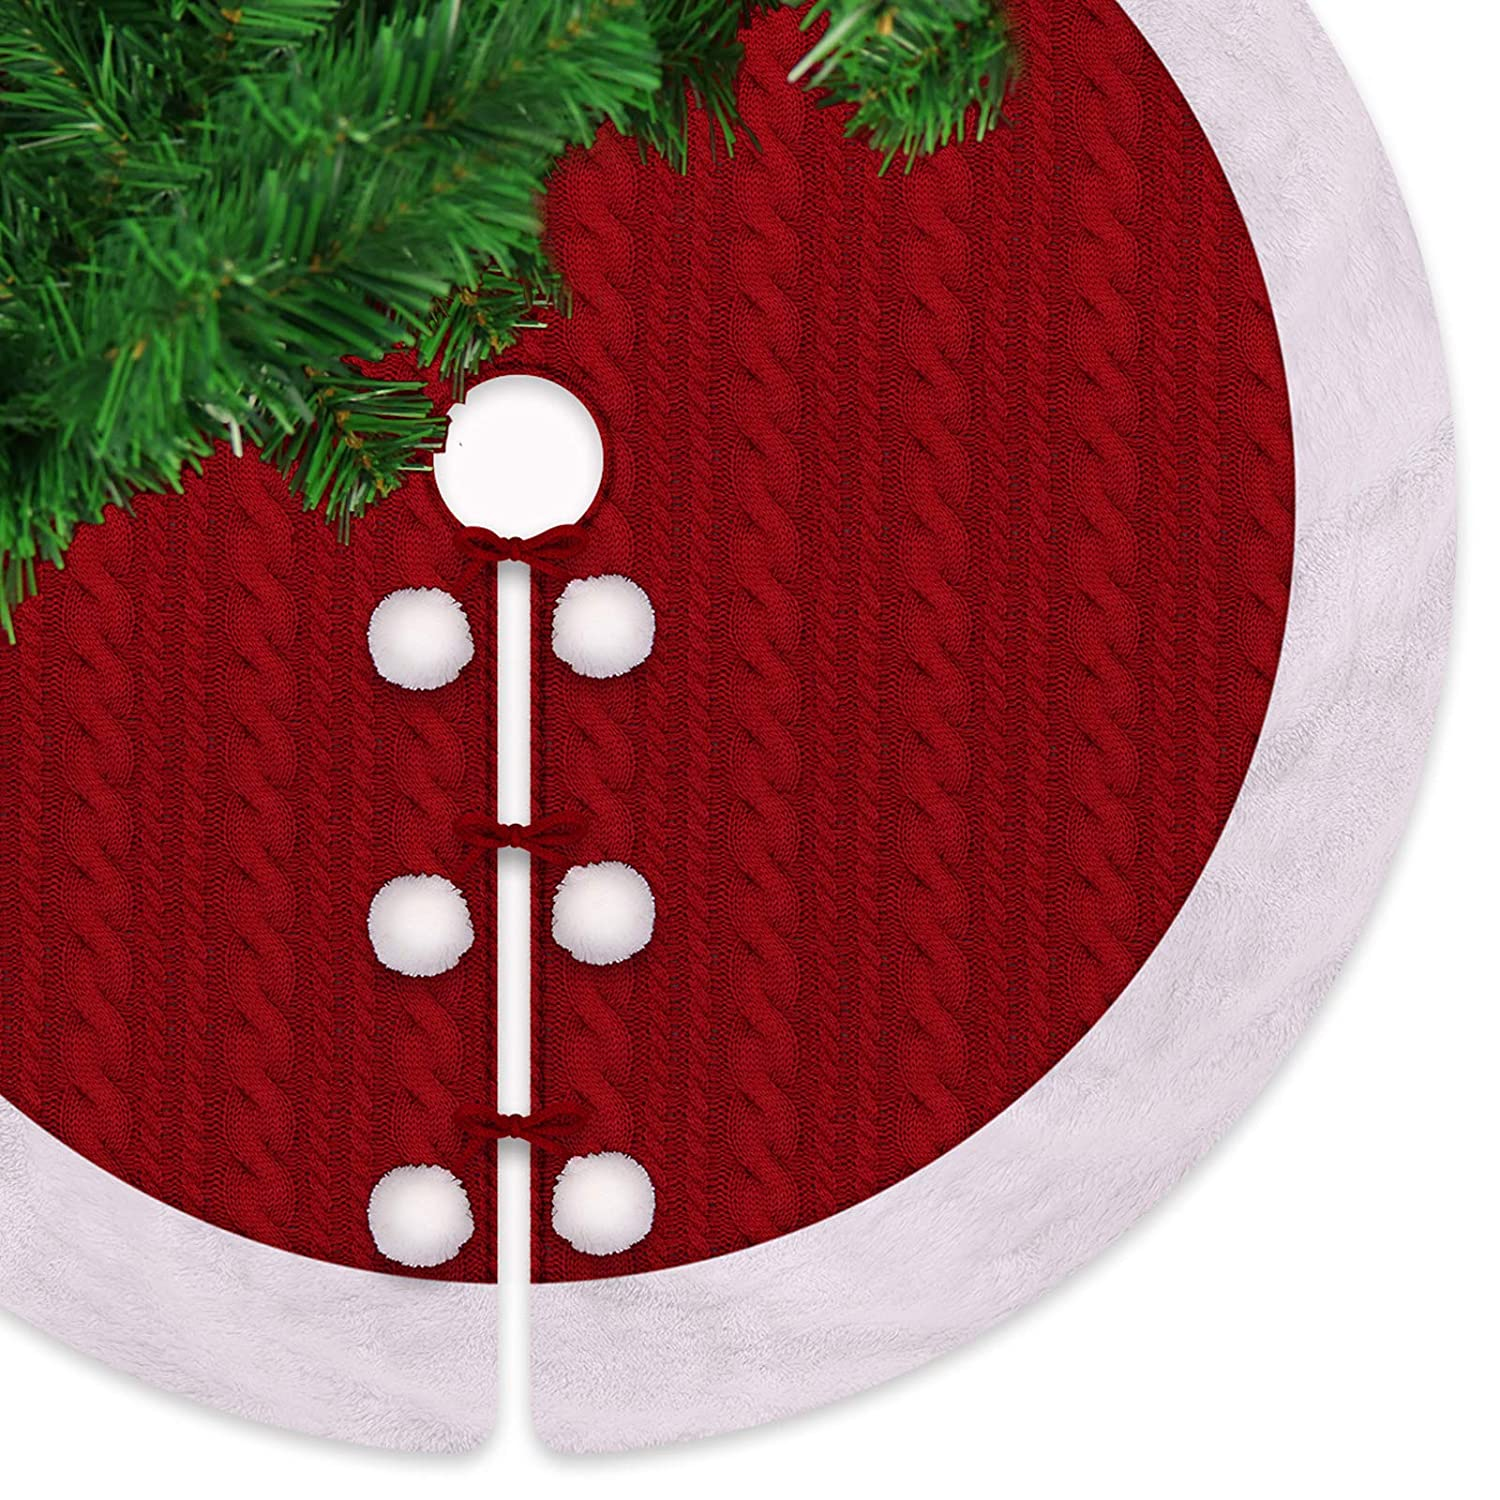 LimBridge 48\' Luxury Knitted Christmas Tree Skirt with Plush Faux Fur Edge, Rustic Red/White Thick Heavy Yarn Knit Xmas Holiday Decoration